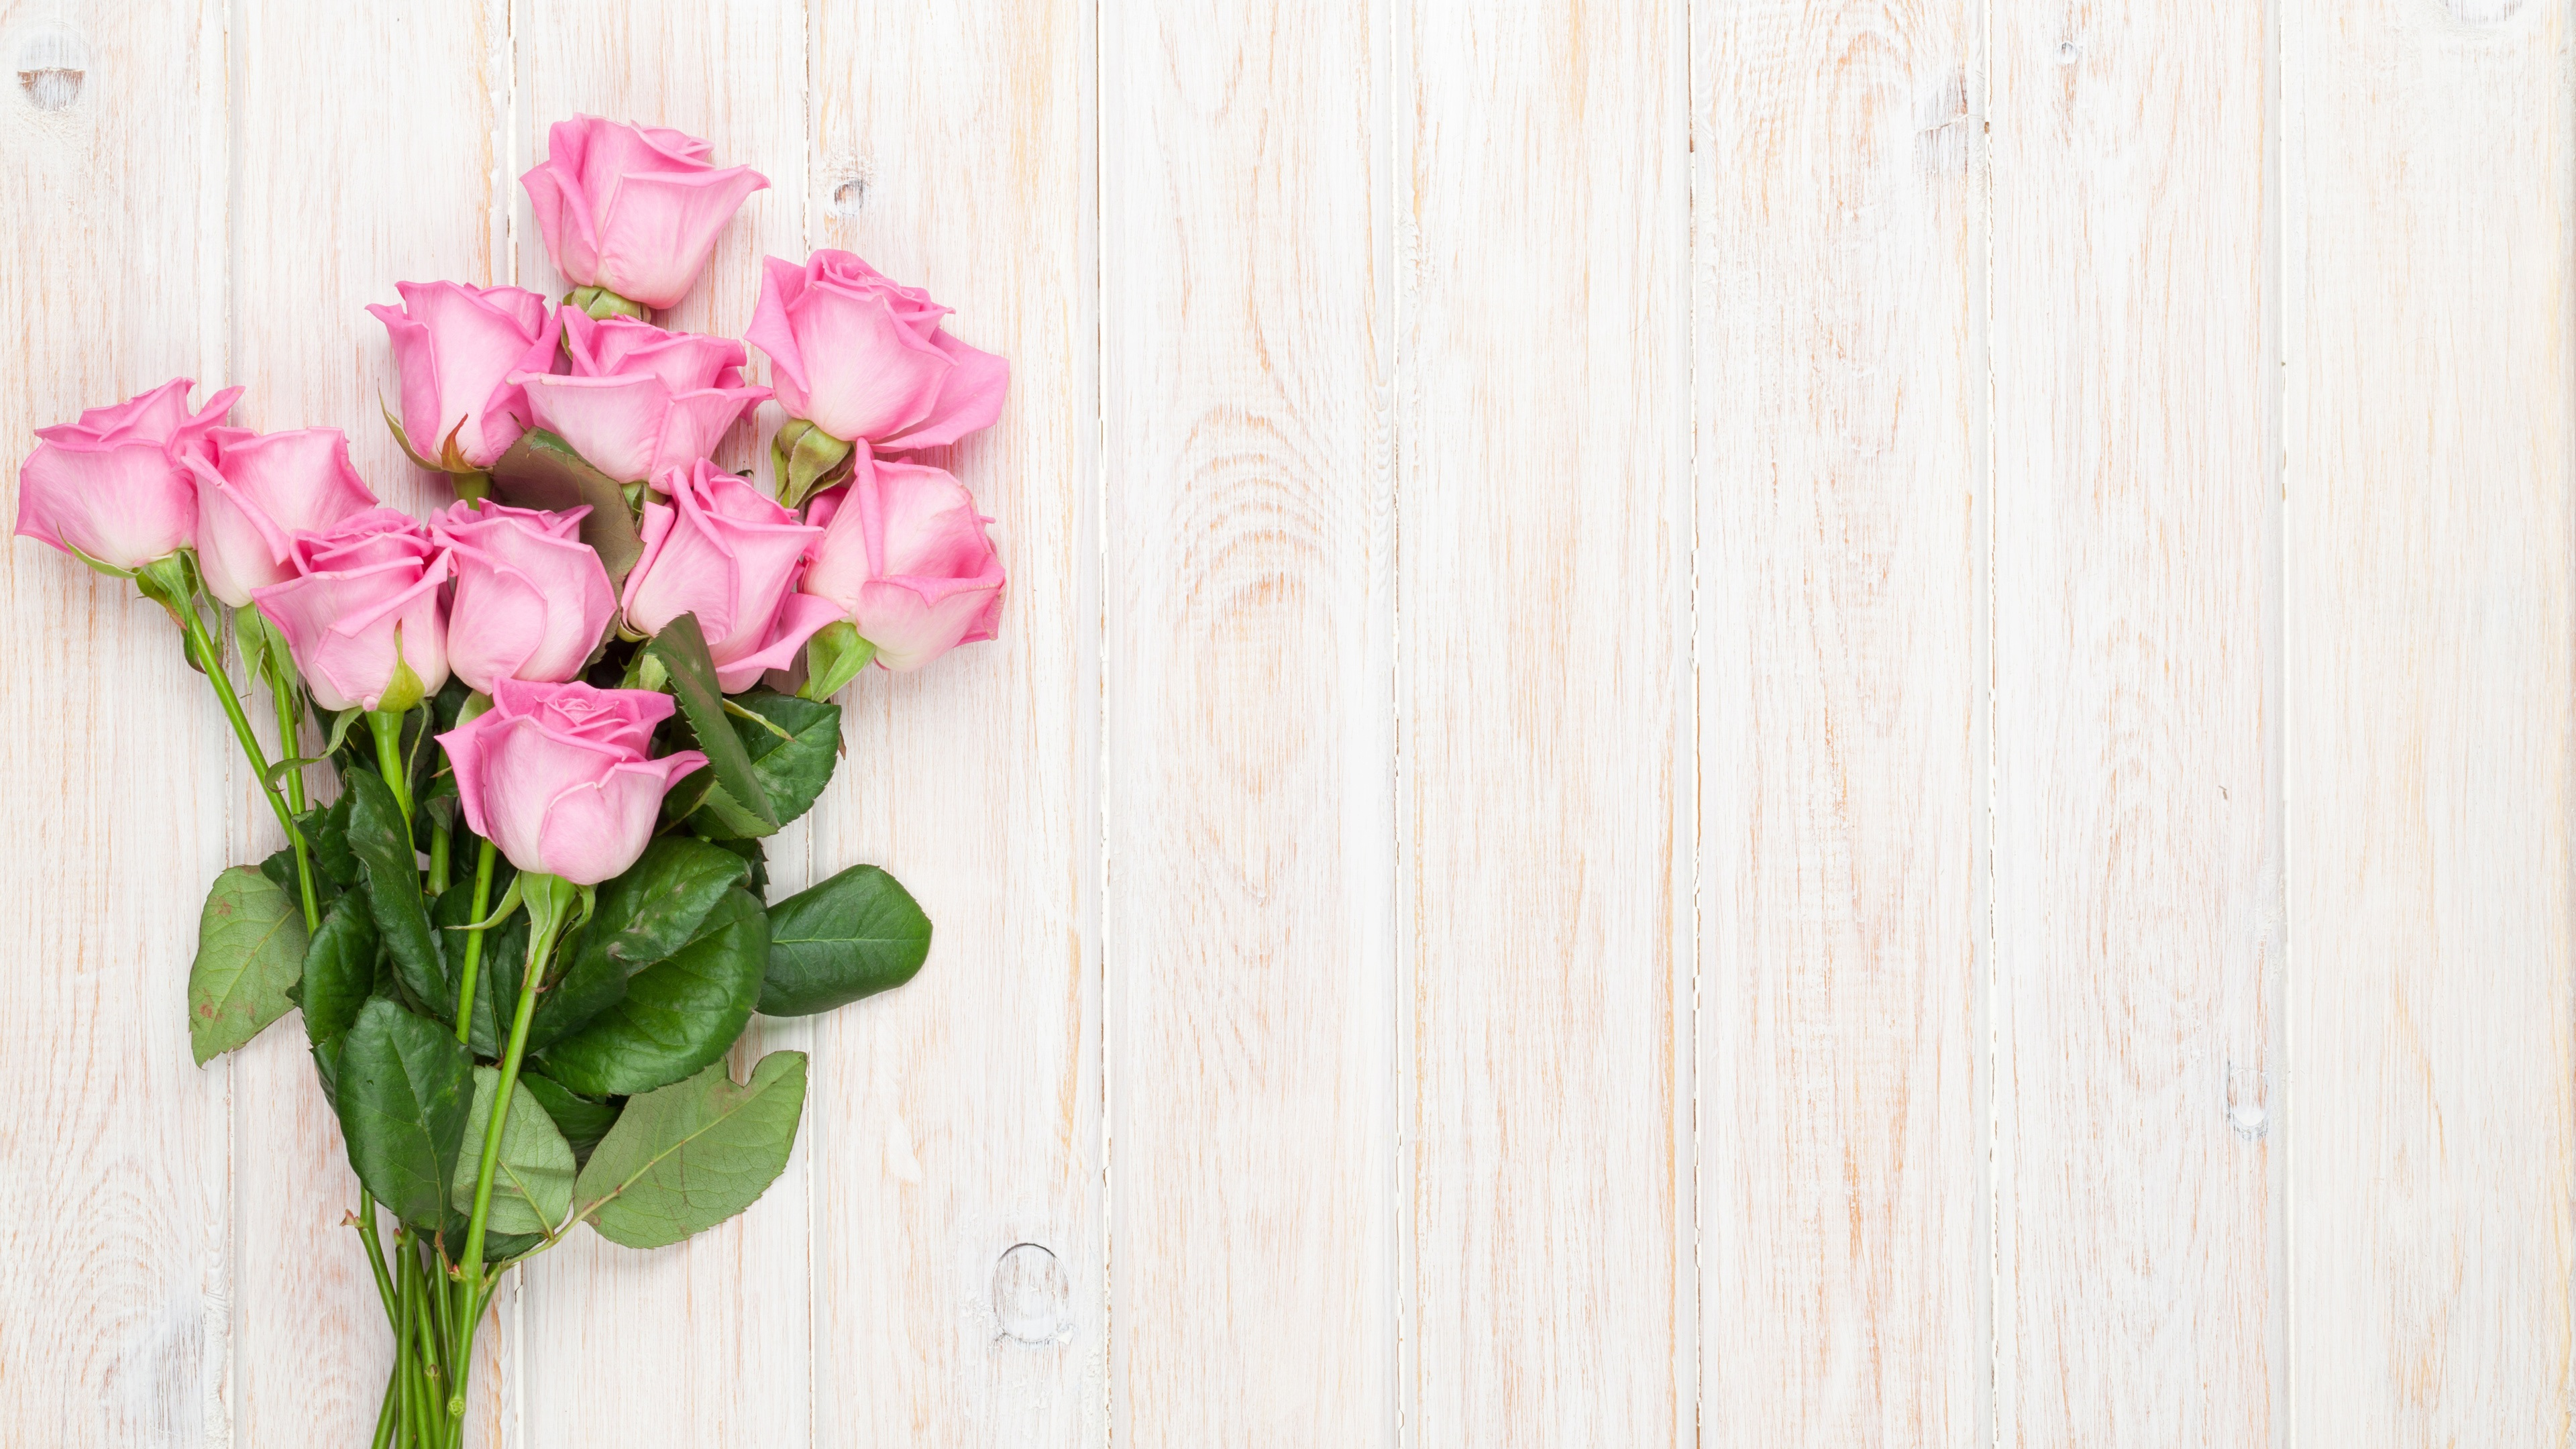 Wallpaper Bouquet Pink Flowers Roses Wood Background 3840x2160